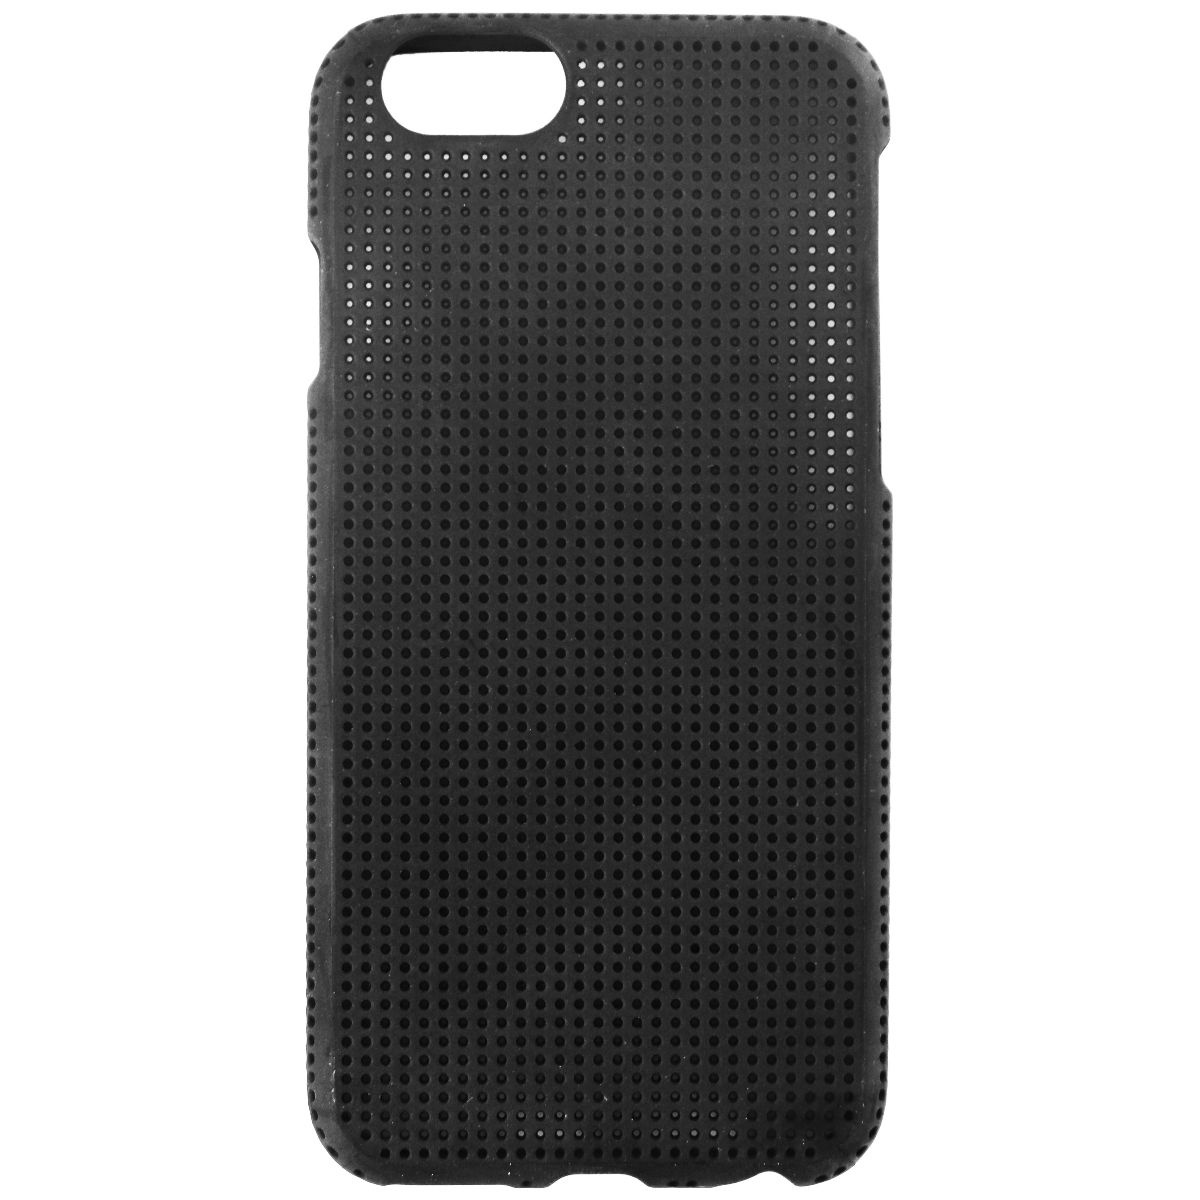 promo code 1bd67 3541c Insignia Soft Shell Vented Gel Case for Apple iPhone 6s and 6 - Black